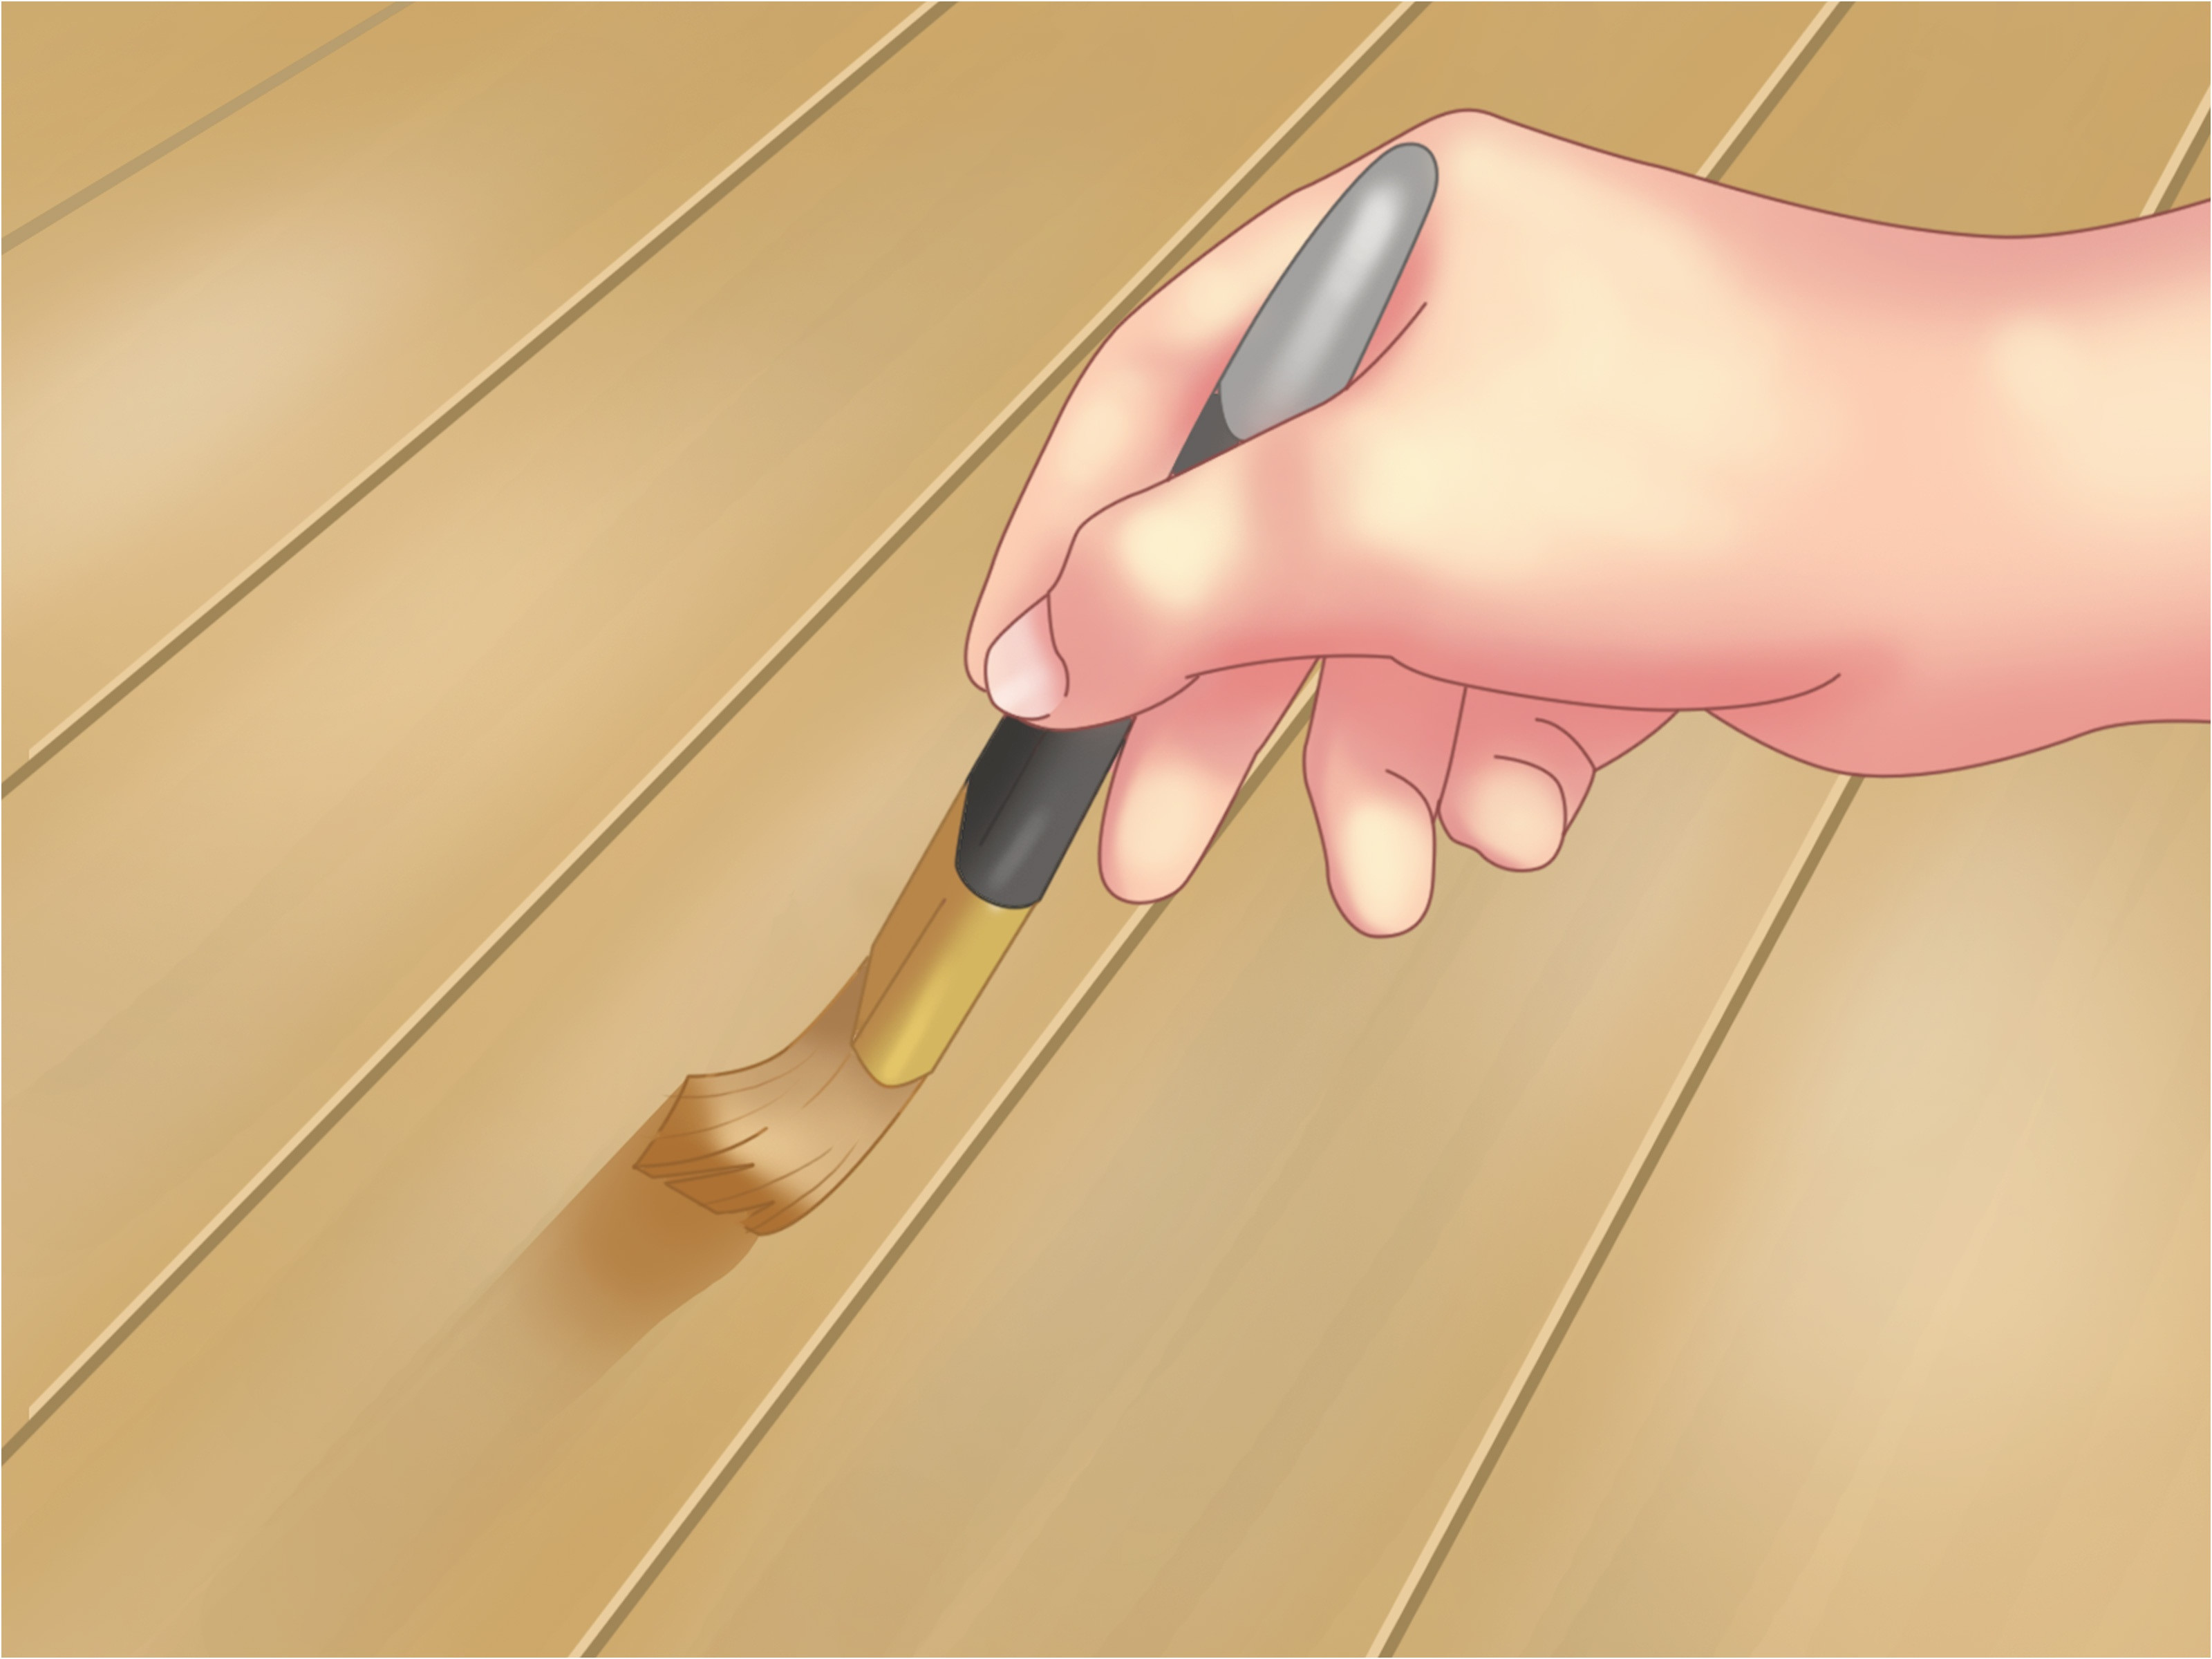 how to repair hardwood floor scratches of how to repair scratches on laminate flooring luxury how to avoid mon regarding how to repair scratches on laminate flooring lovely laminated flooring exciting laminate vs wood prosource exquisite